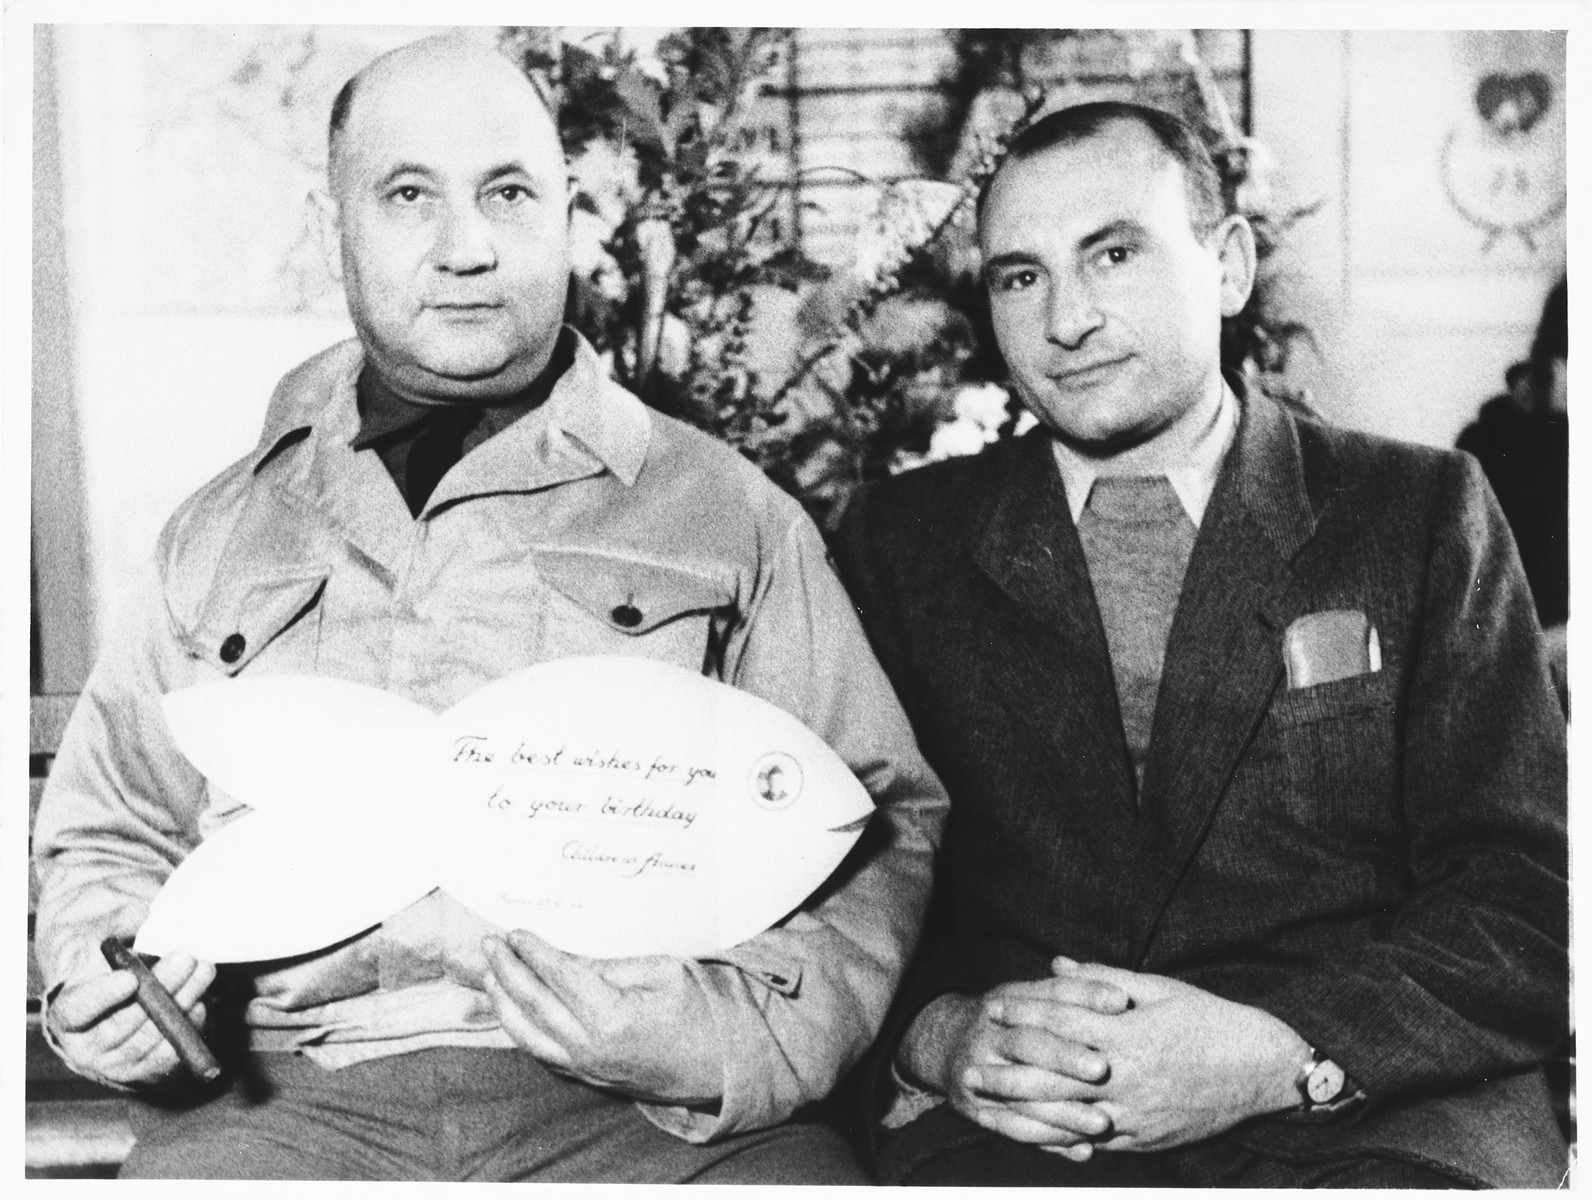 UNRRA camp director, Harold Fishbein (left), holds up a birthday card shaped like a fish, which he received from the children in the Schlachtensee displaced persons camp.  Pincus Proszowski (later Peter Prosaw) is pictured on the right. A survivor of the Lodz ghetto and Auschwitz, he was the director of the Schlachtensee children's home and the graphic designer who made the camp scrapbook.